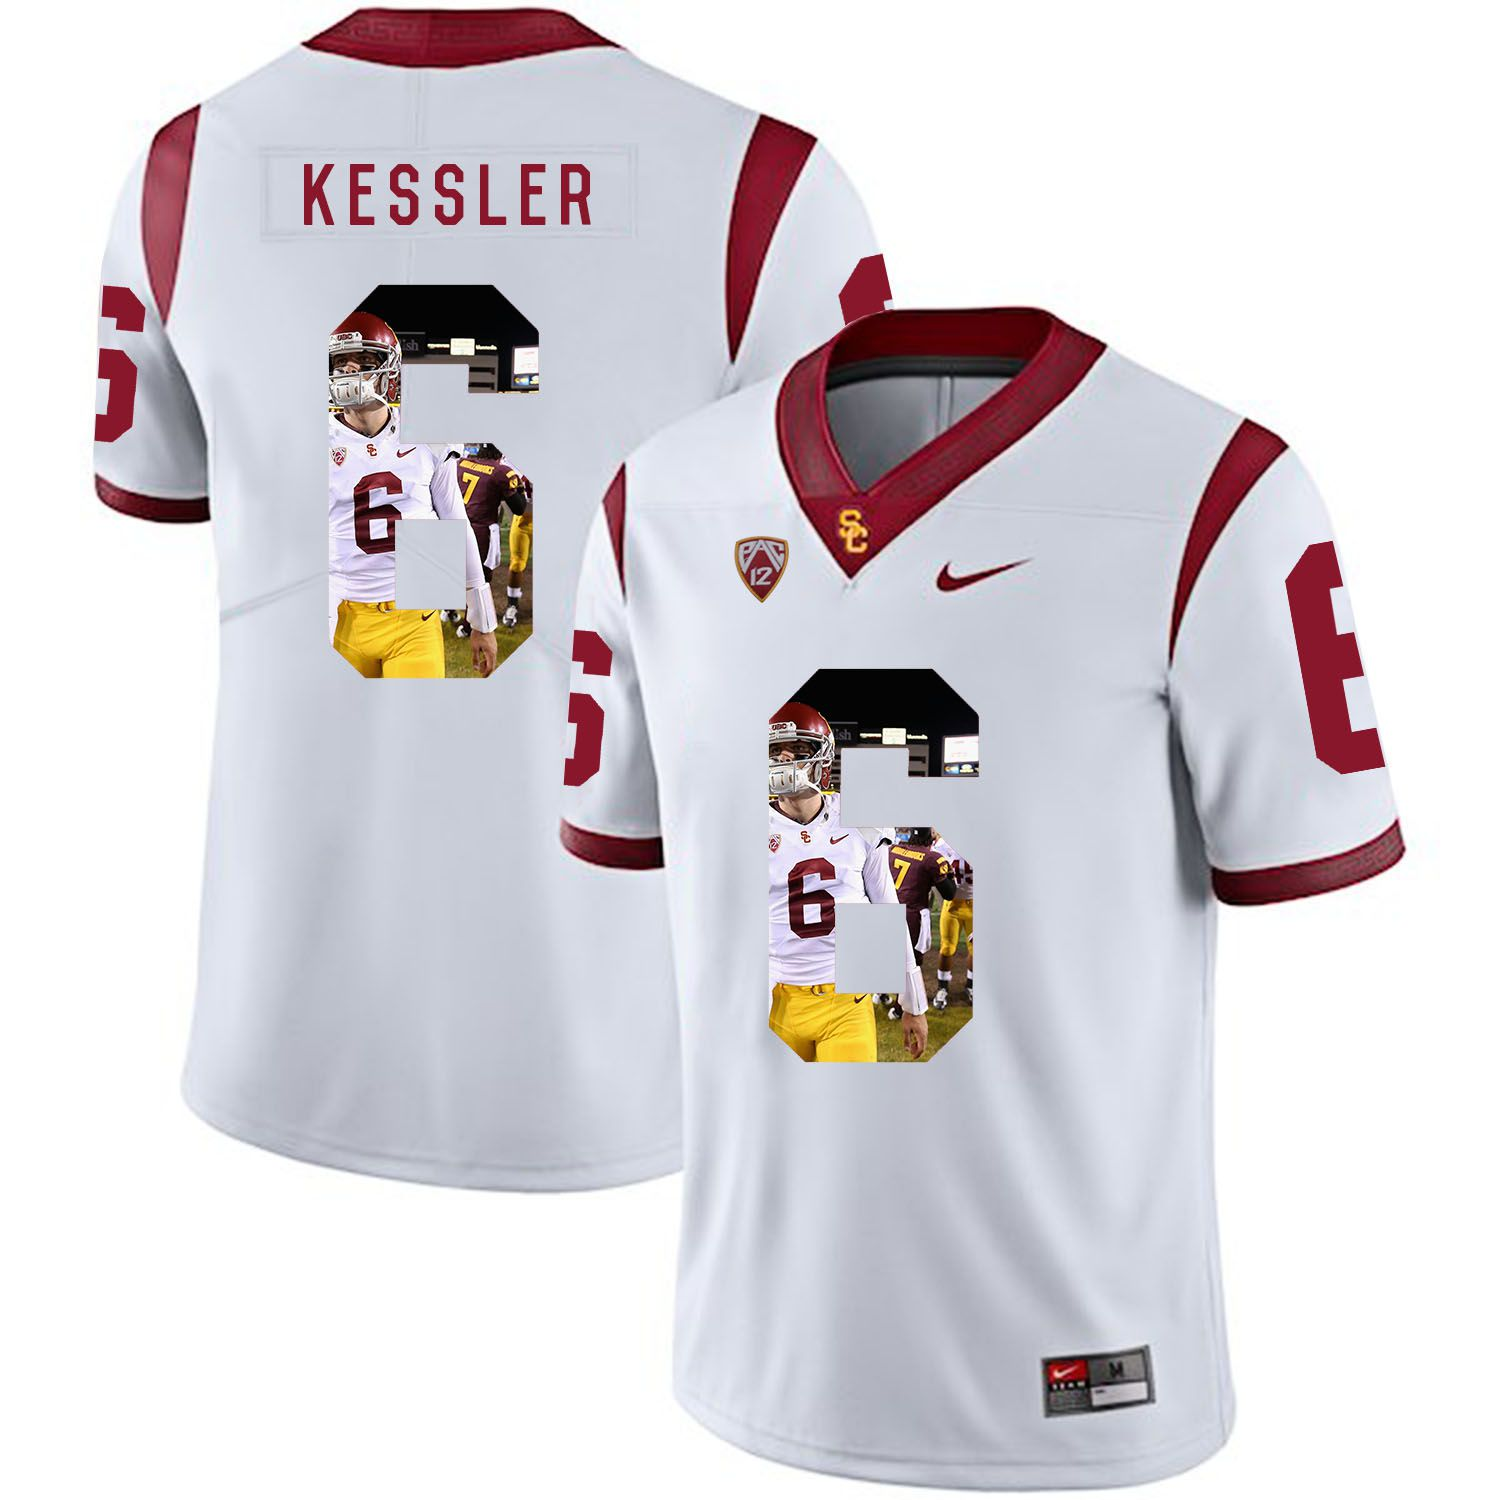 Men USC Trojans 6 Kessler White Fashion Edition Customized NCAA Jerseys